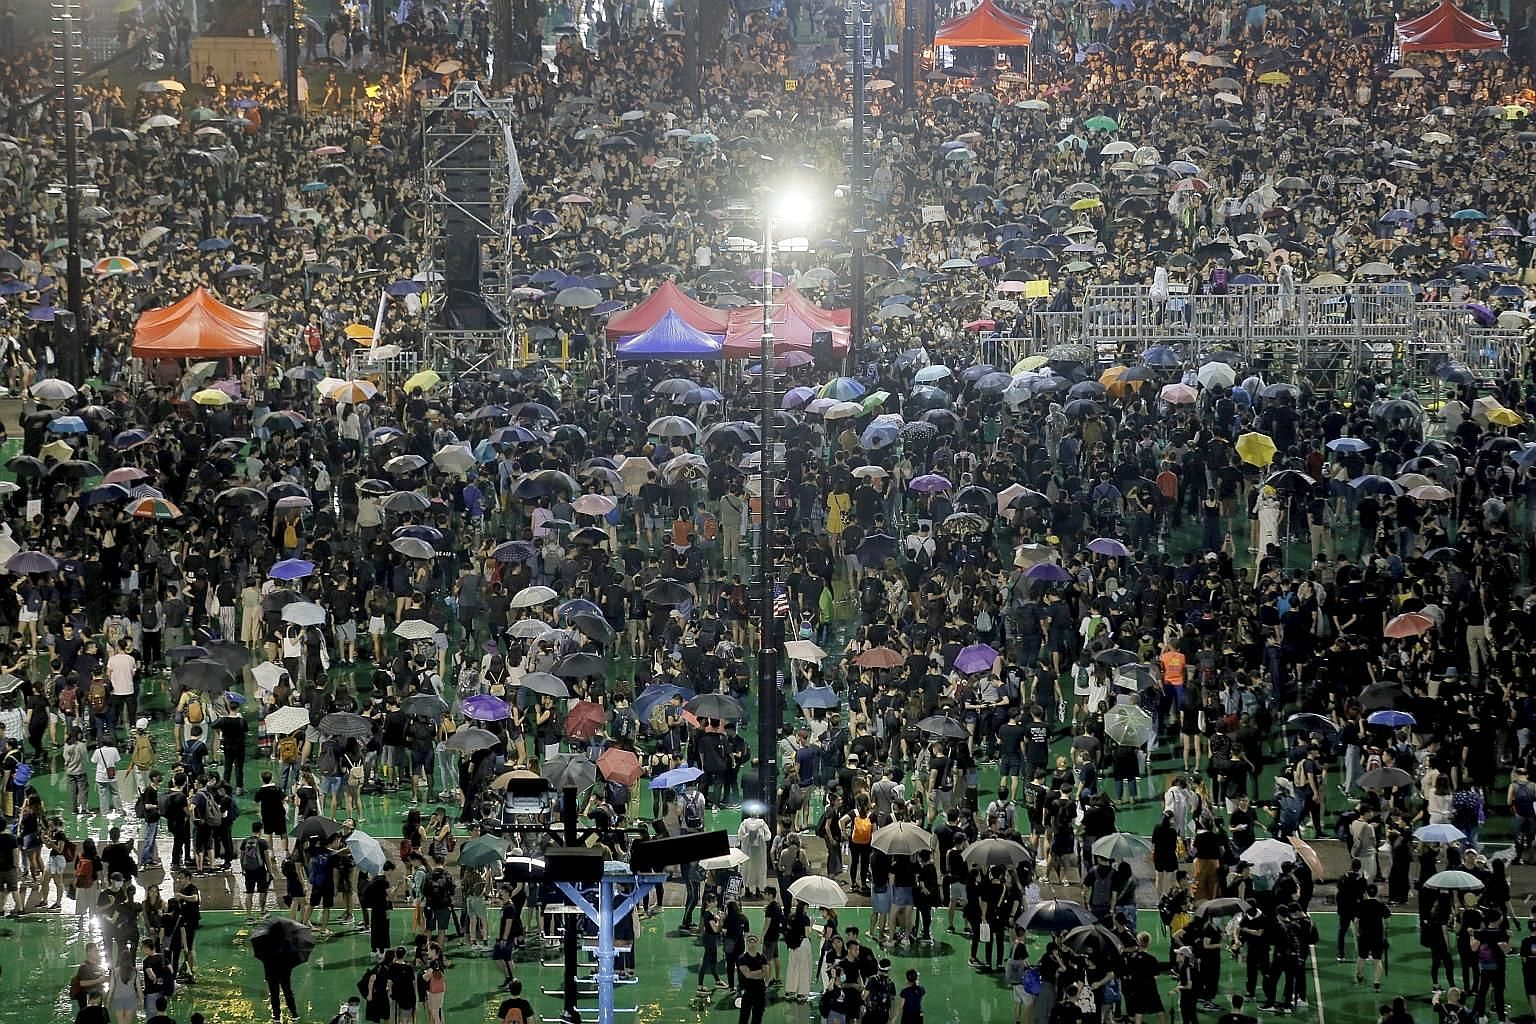 Hong Kong protesters braving the rain at yesterday's rally in Victoria Park. The weekend's protests were the first largely peaceful rallies in 11th straight weekends of demonstrations in the city.